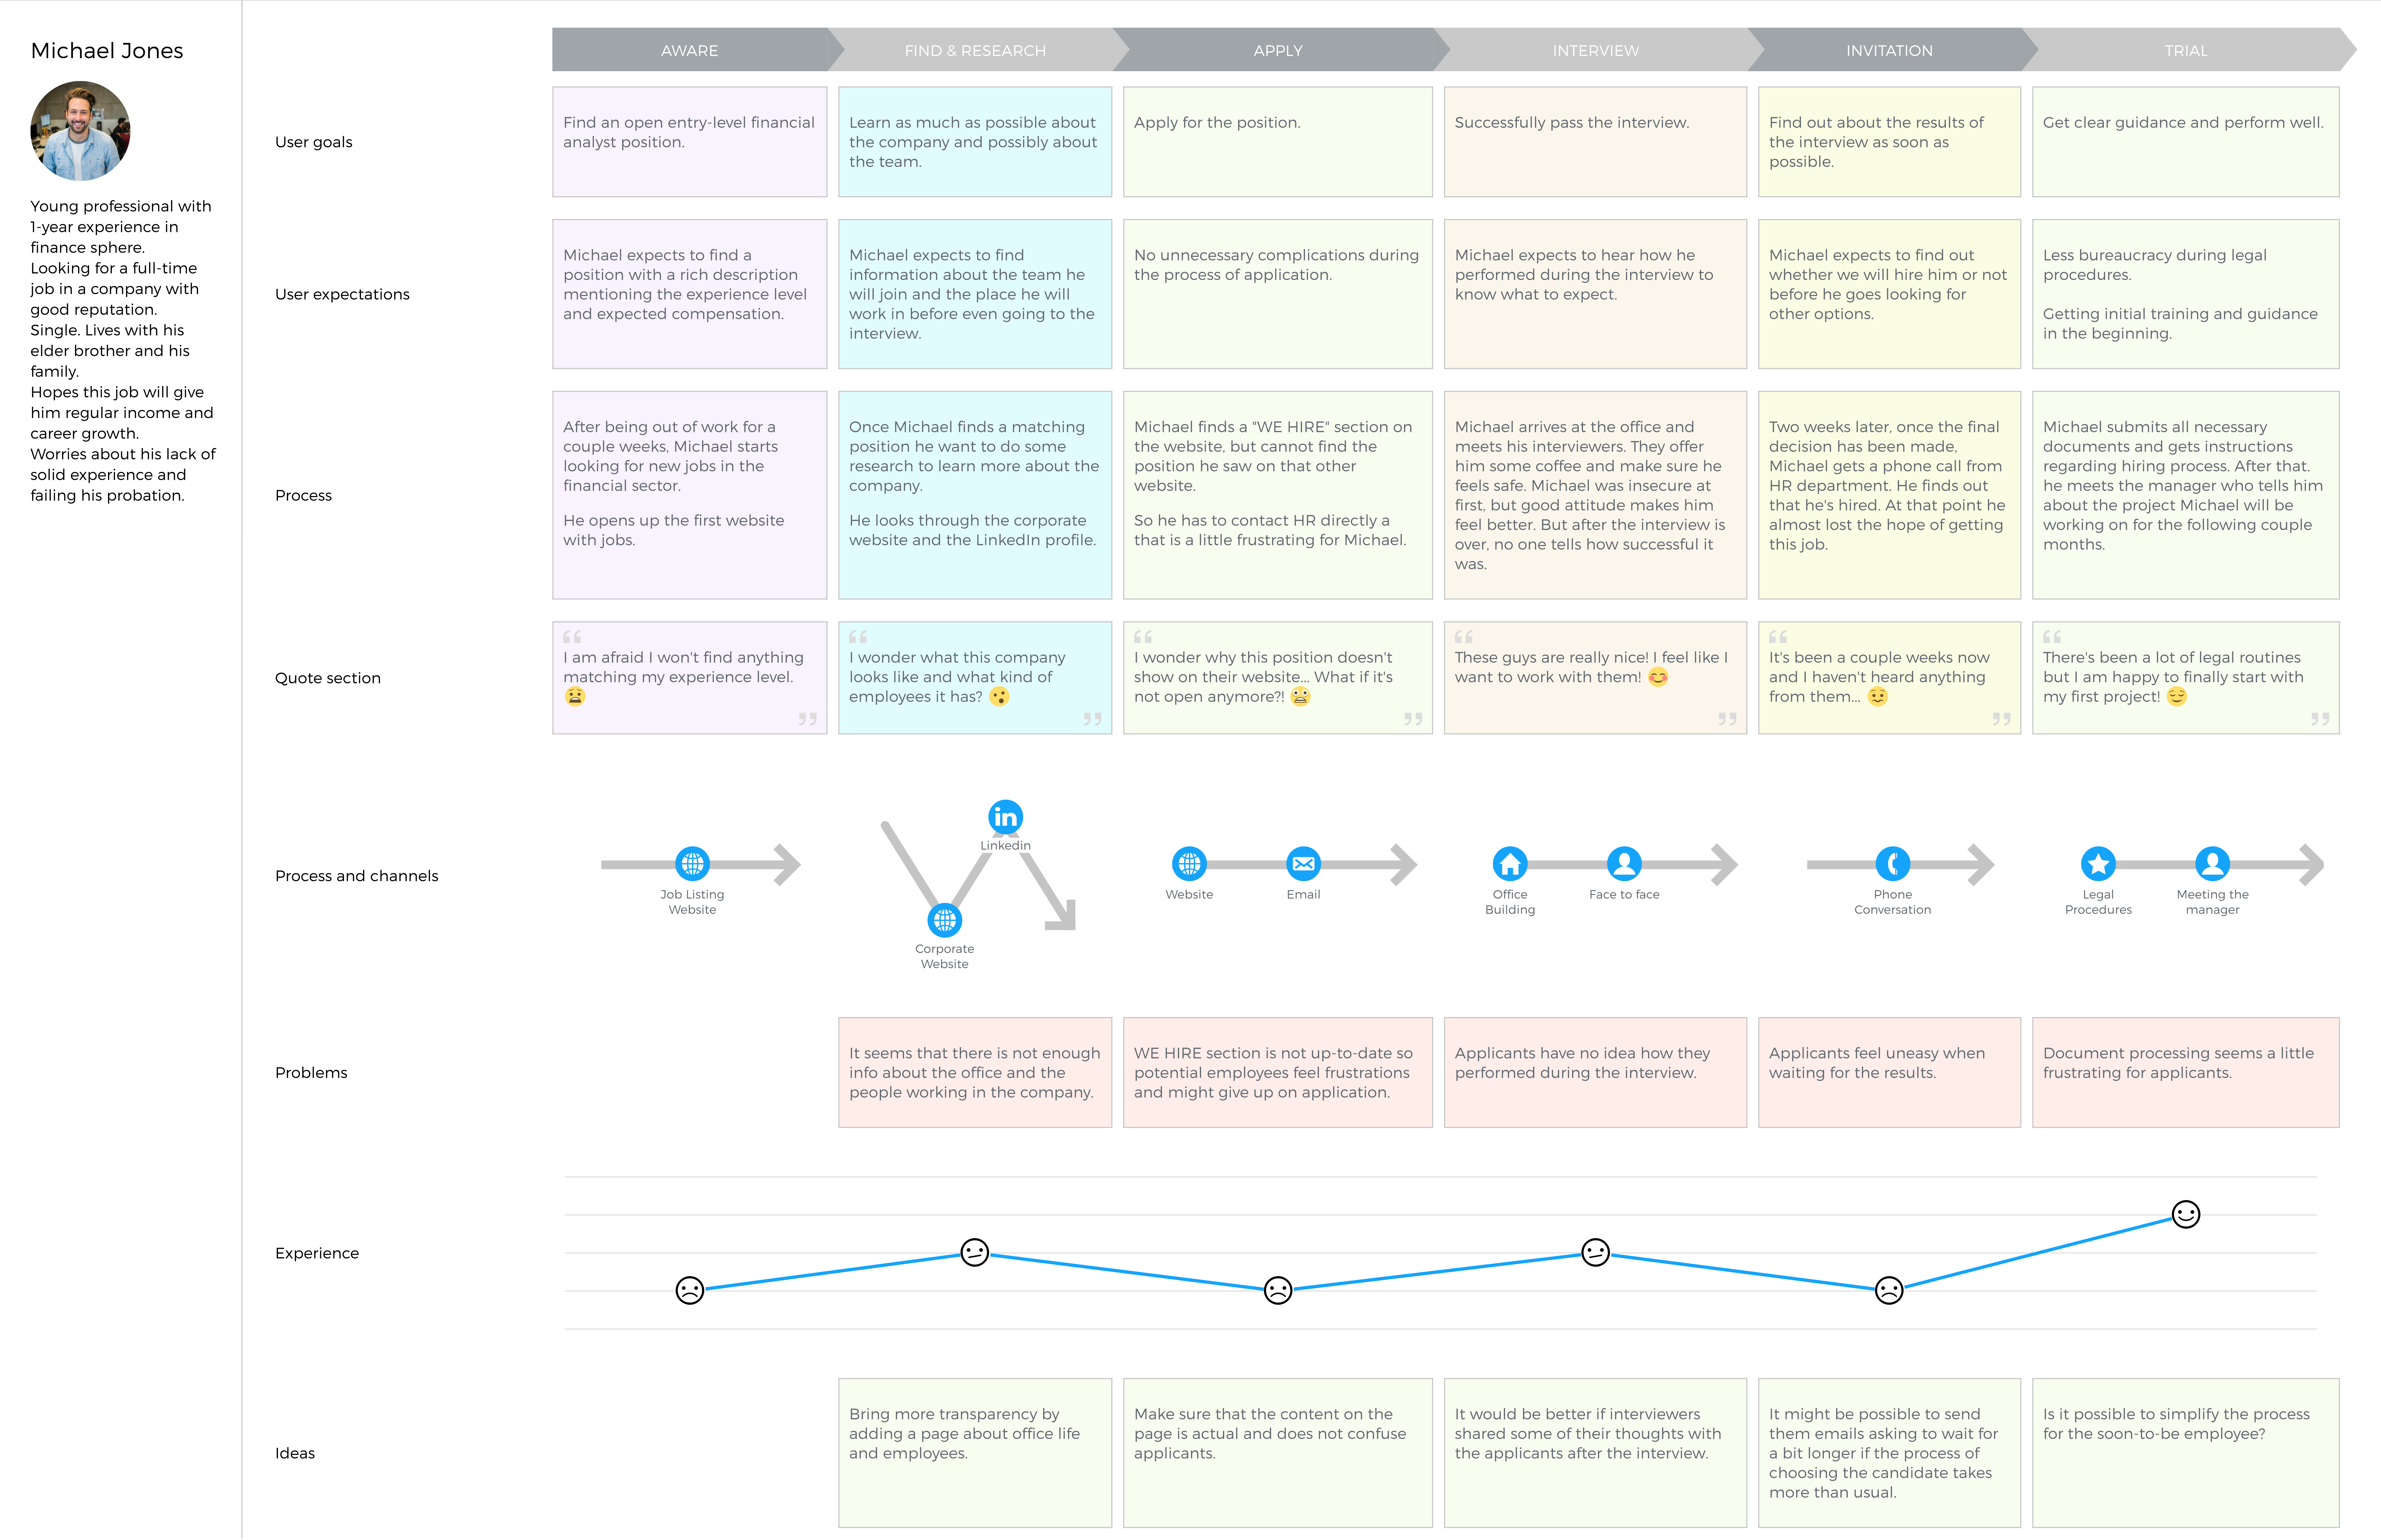 Ejemplo de Employee Journey Map creado con la herramienta UXPressia Customer Journey Mapping